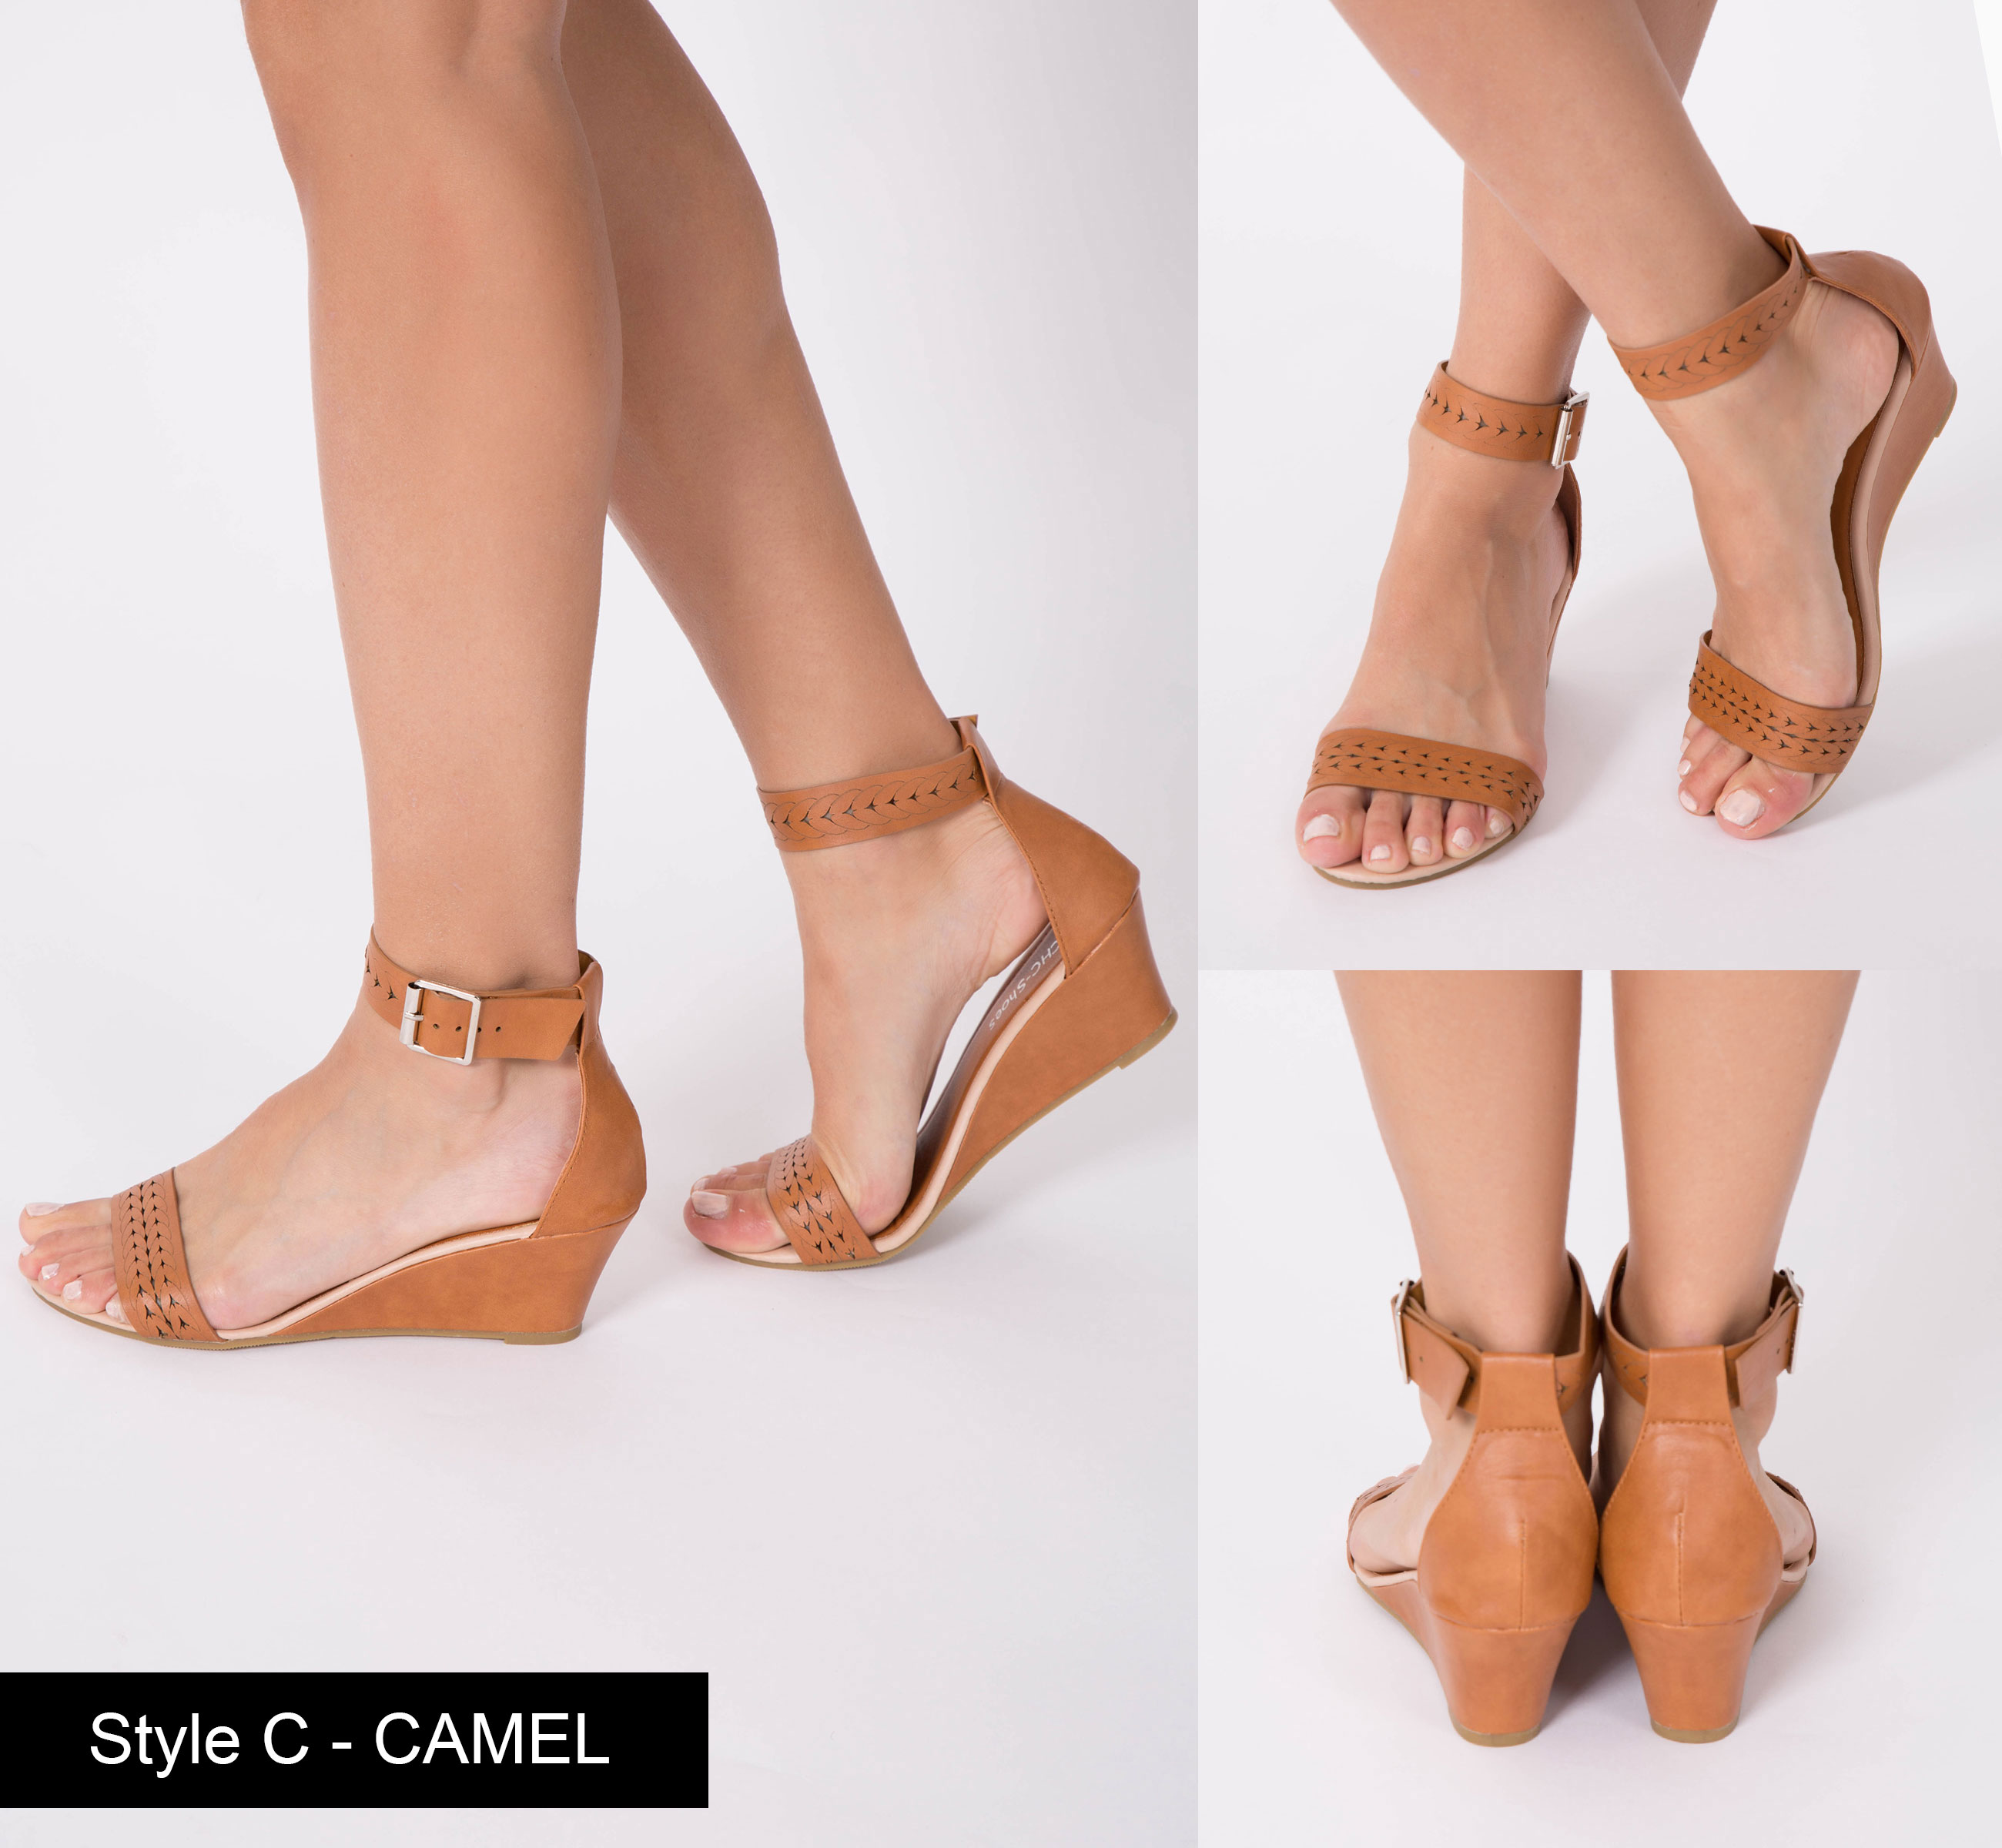 NEW-WOMENS-WEDGES-LADIES-HIGH-HEEL-PLATFORM-ANKLE-STRAP-SANDAL-SHOES-SIZE-UK-3-8